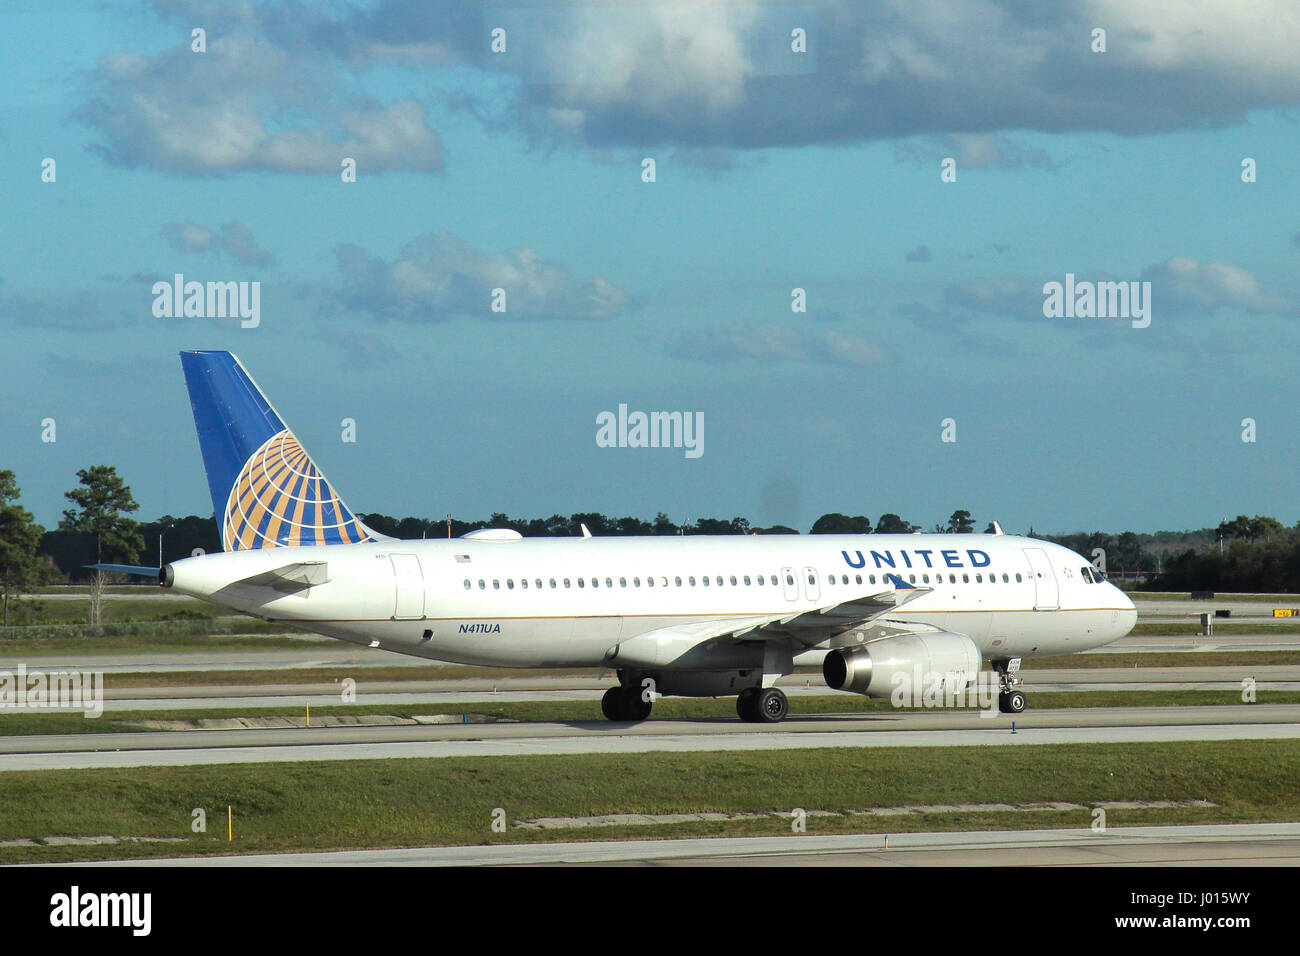 United Airlines Airbus A320-200 - Stock Image